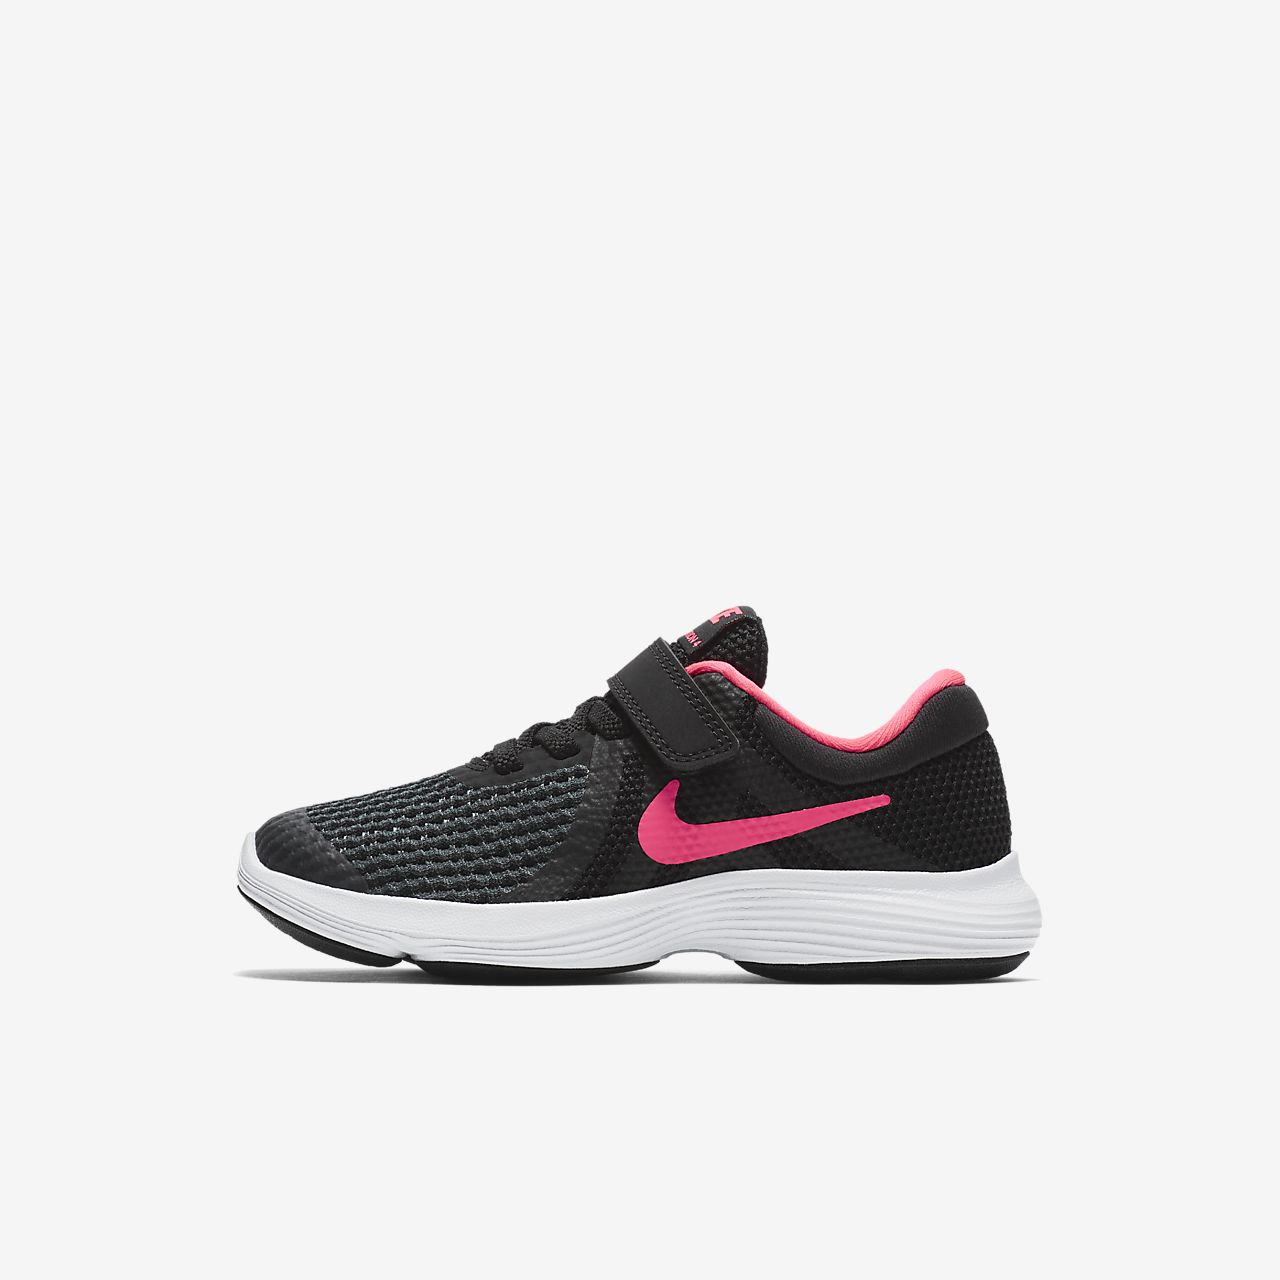 643b849435395 Nike Revolution 4 Younger Kids  Shoe. Nike.com GB